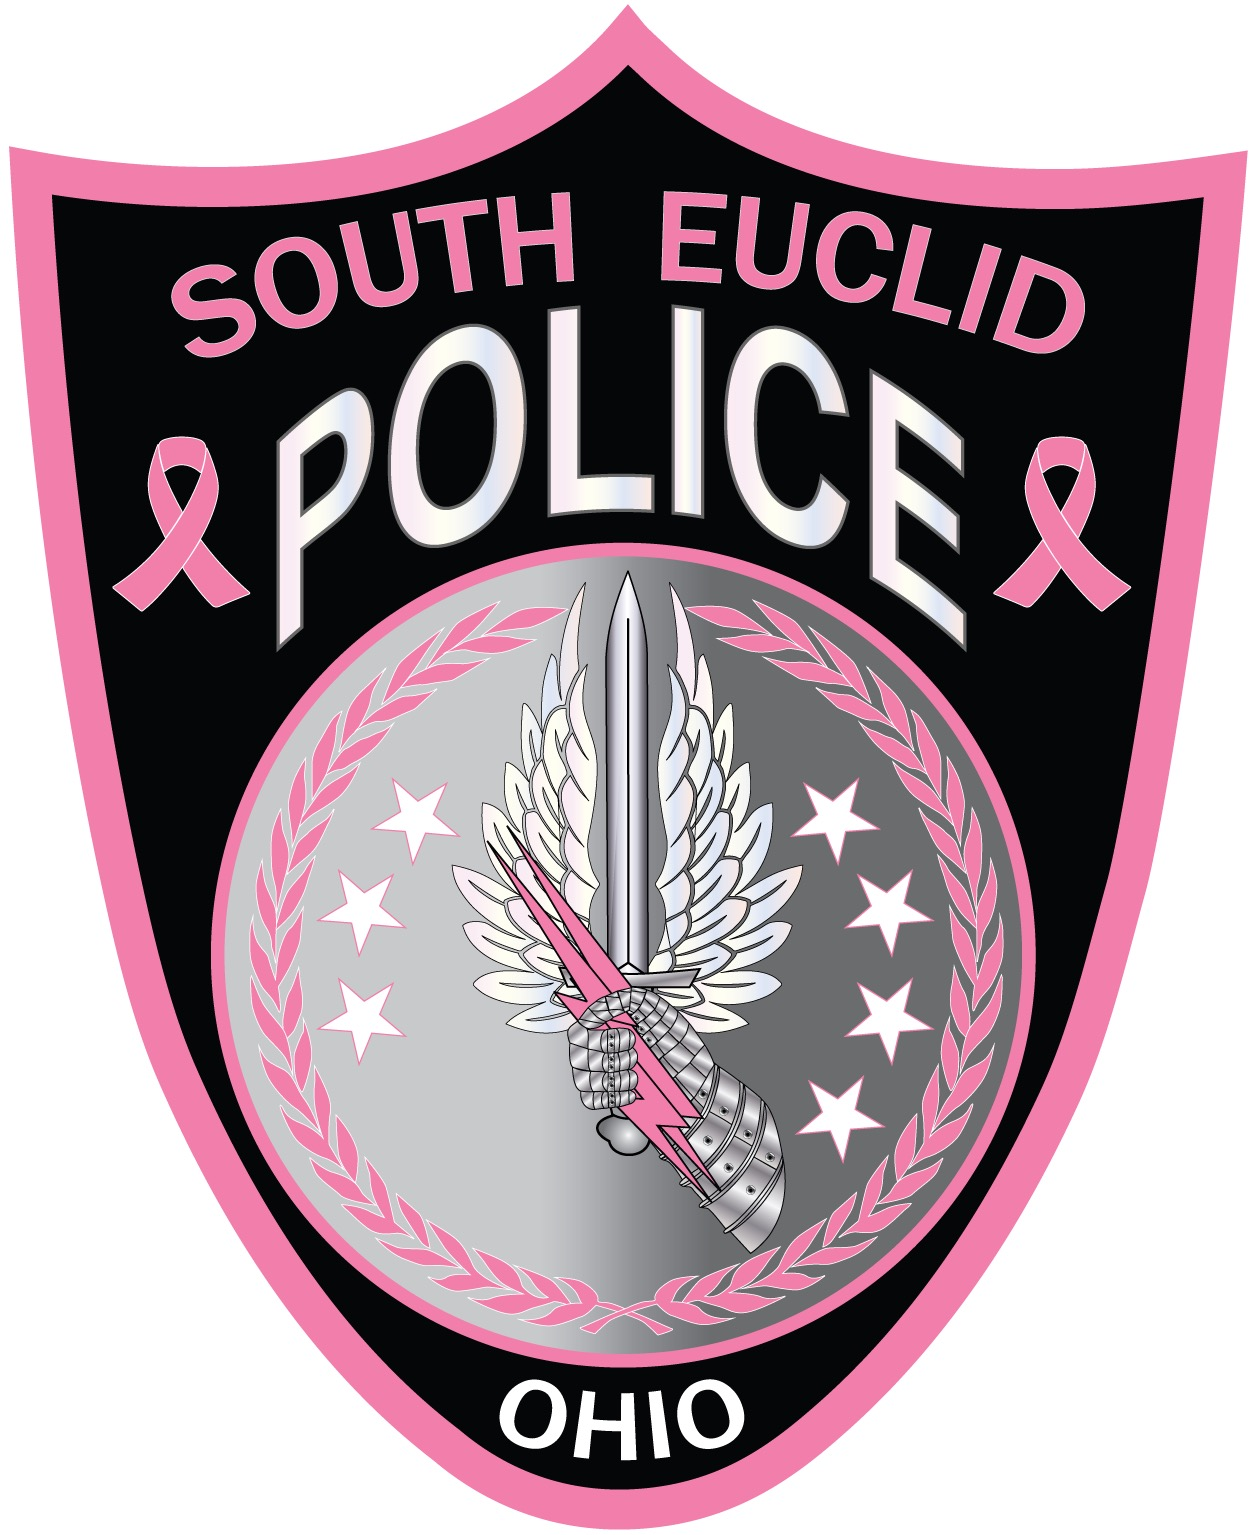 SOUTH EUCLID PPP 2018.JPG